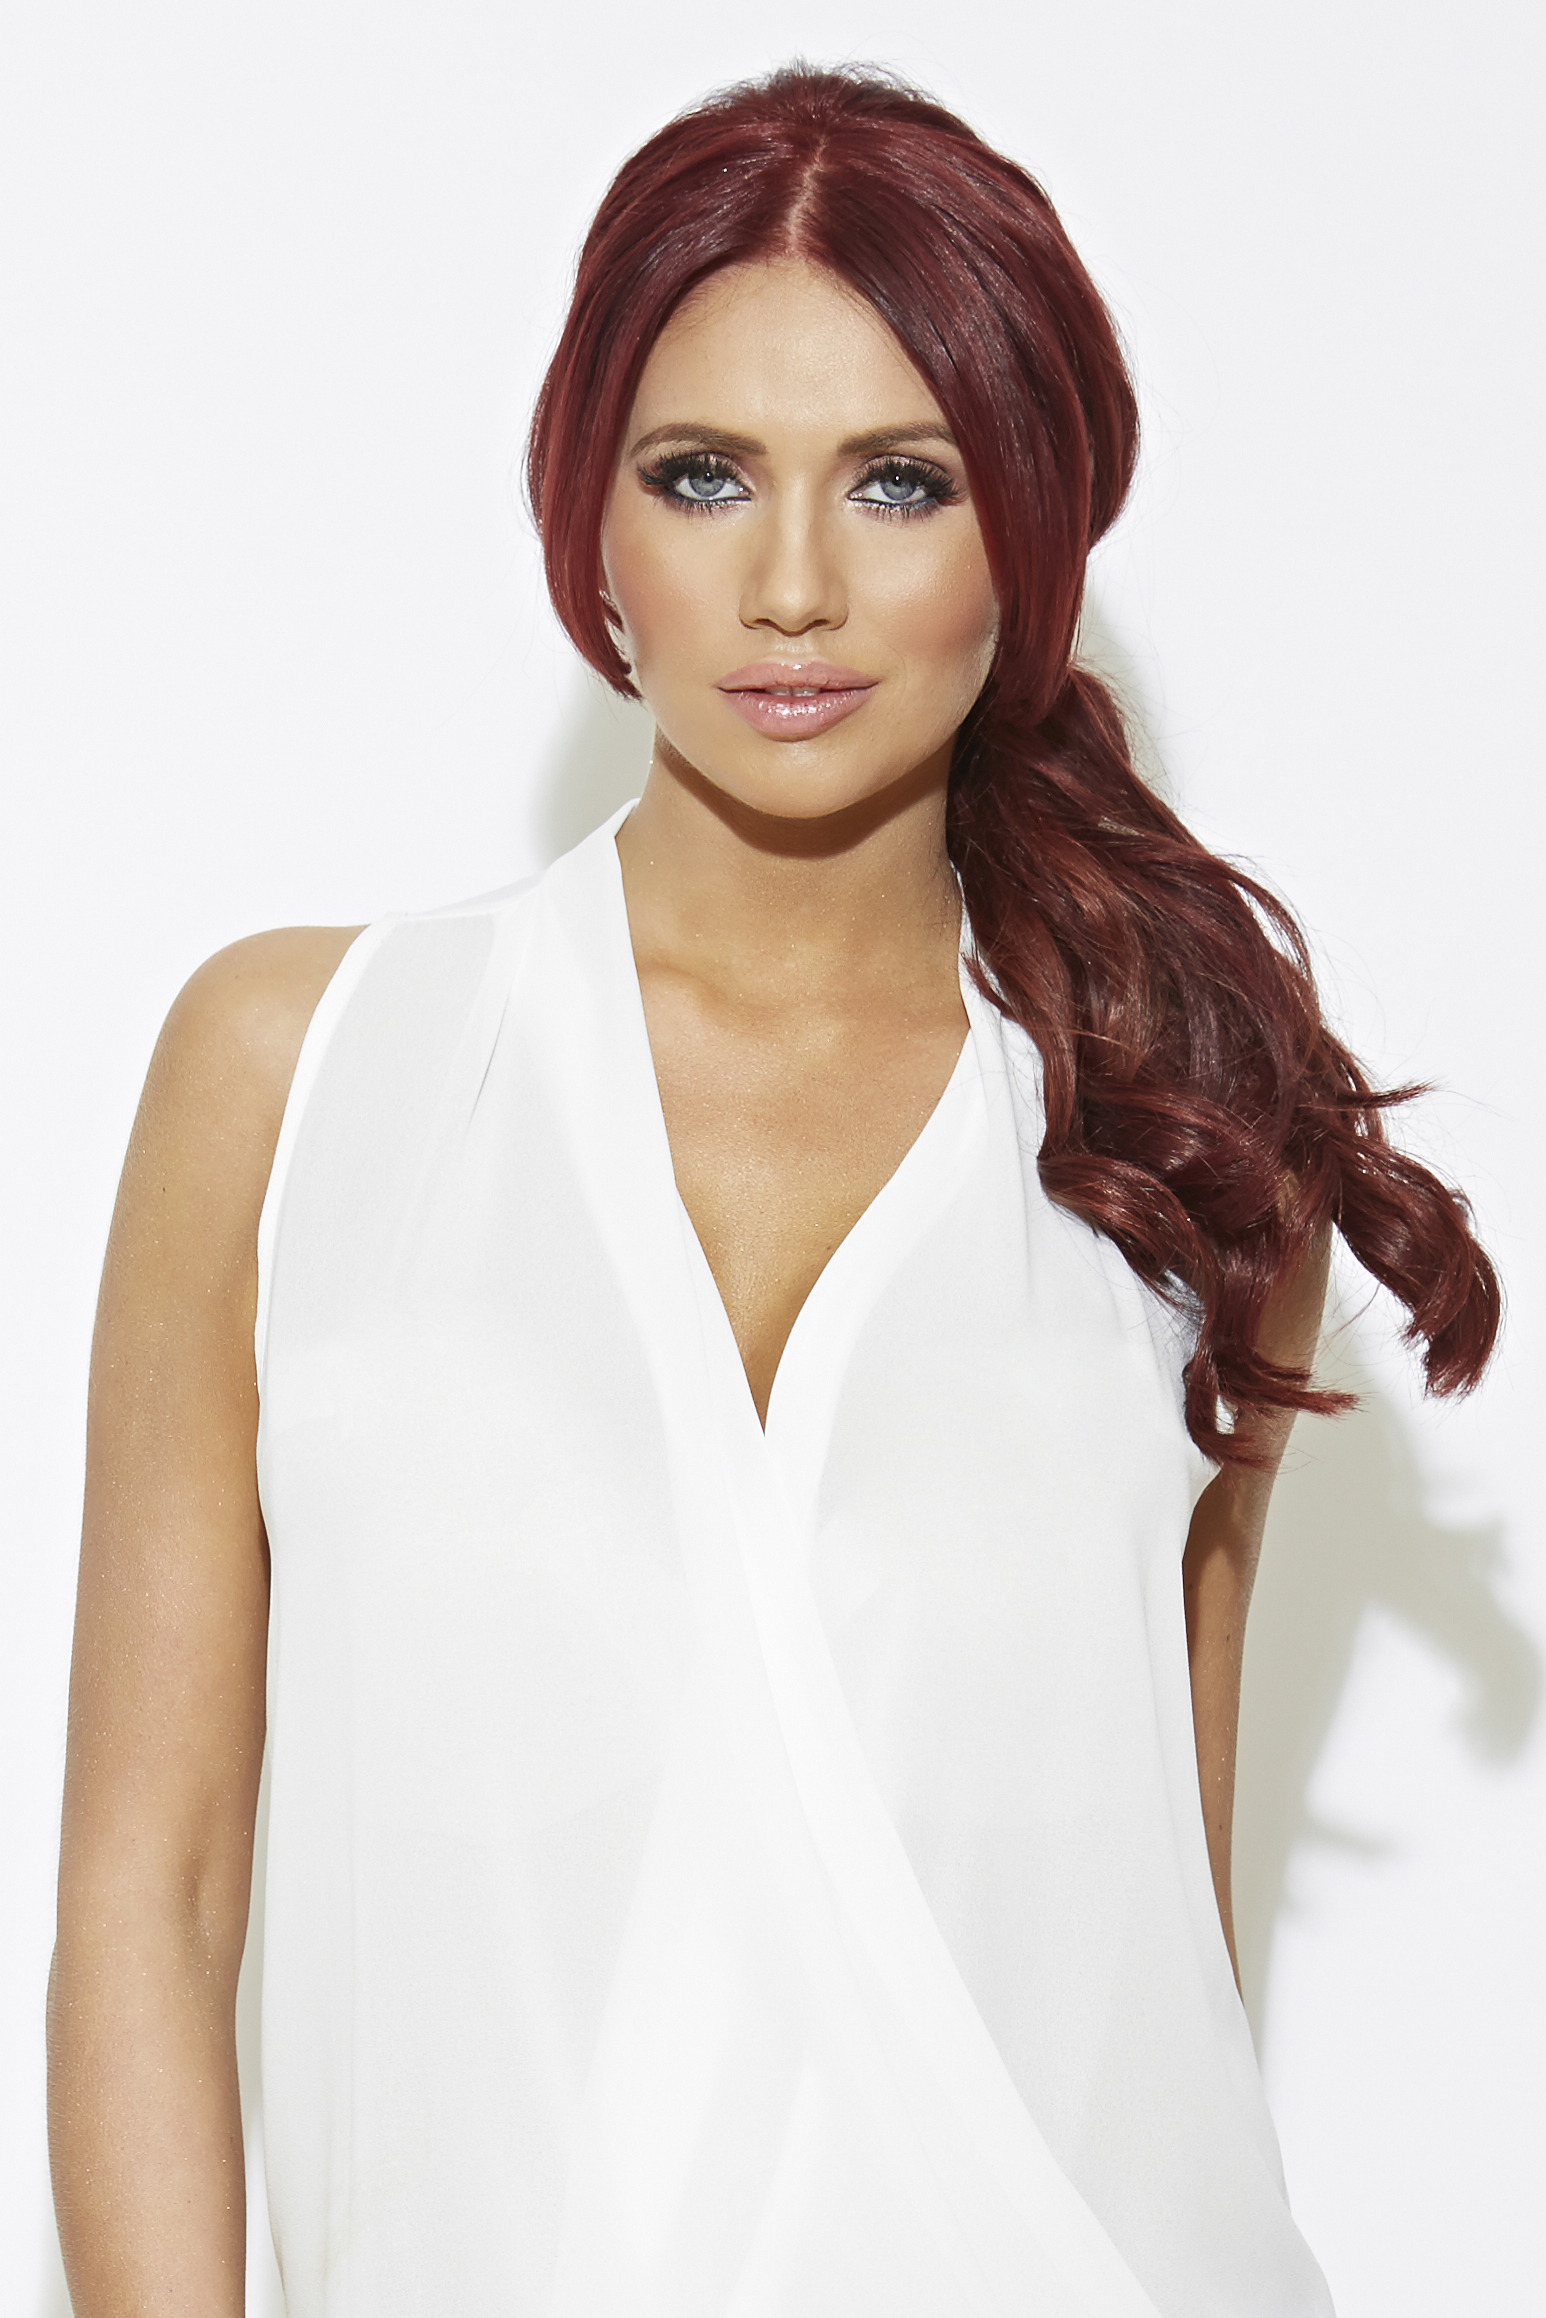 The Only Way Is Essex - mum-to-be Amy Childs